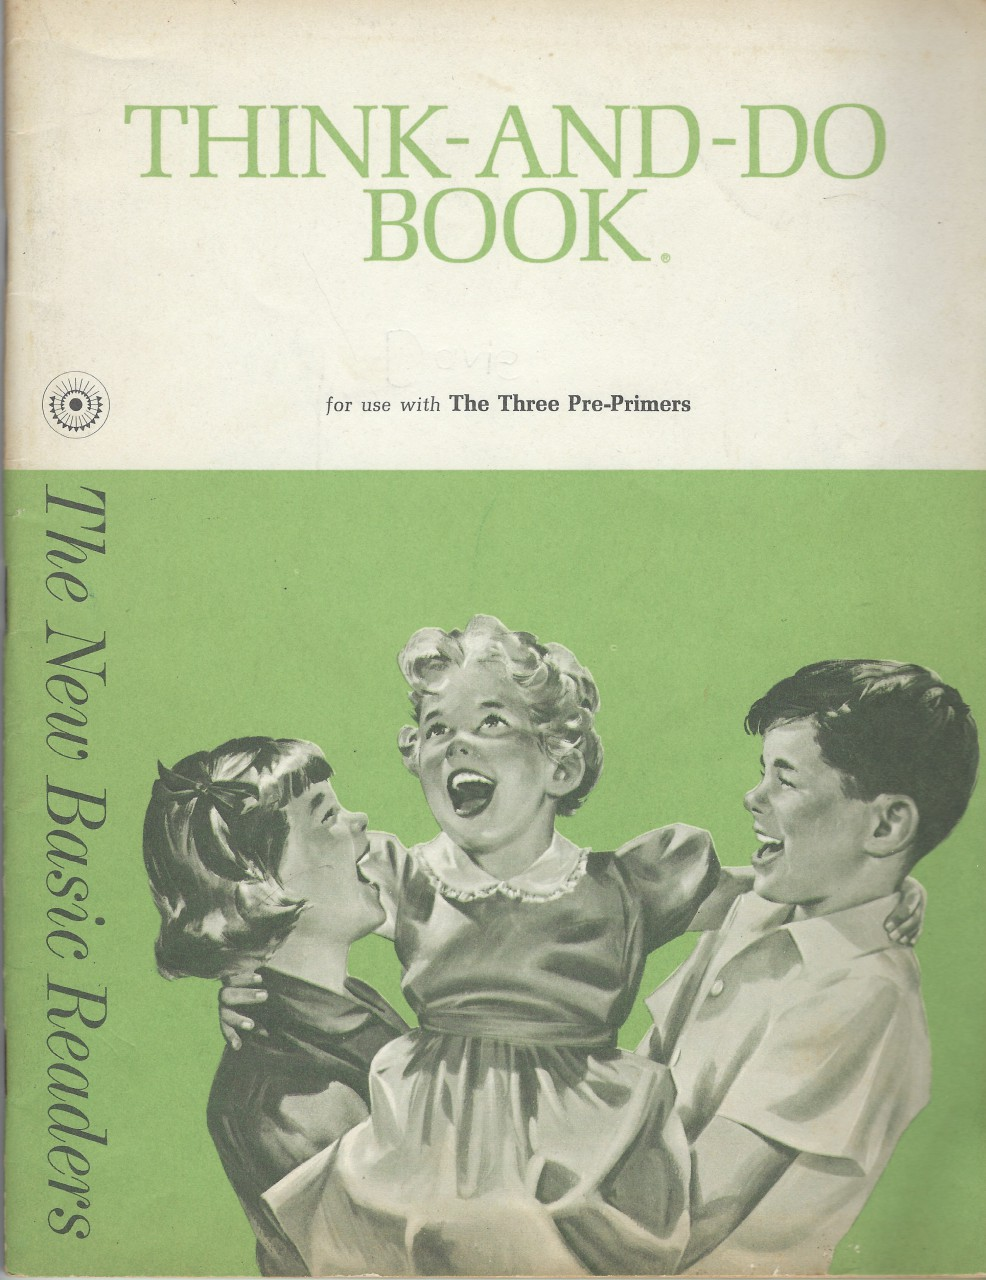 Think-and-Do Book for use with The Three Pre-Primers Dick & Jane 1962, Helen M. Robinson,  Marion Monroe and A. Sterl Artley